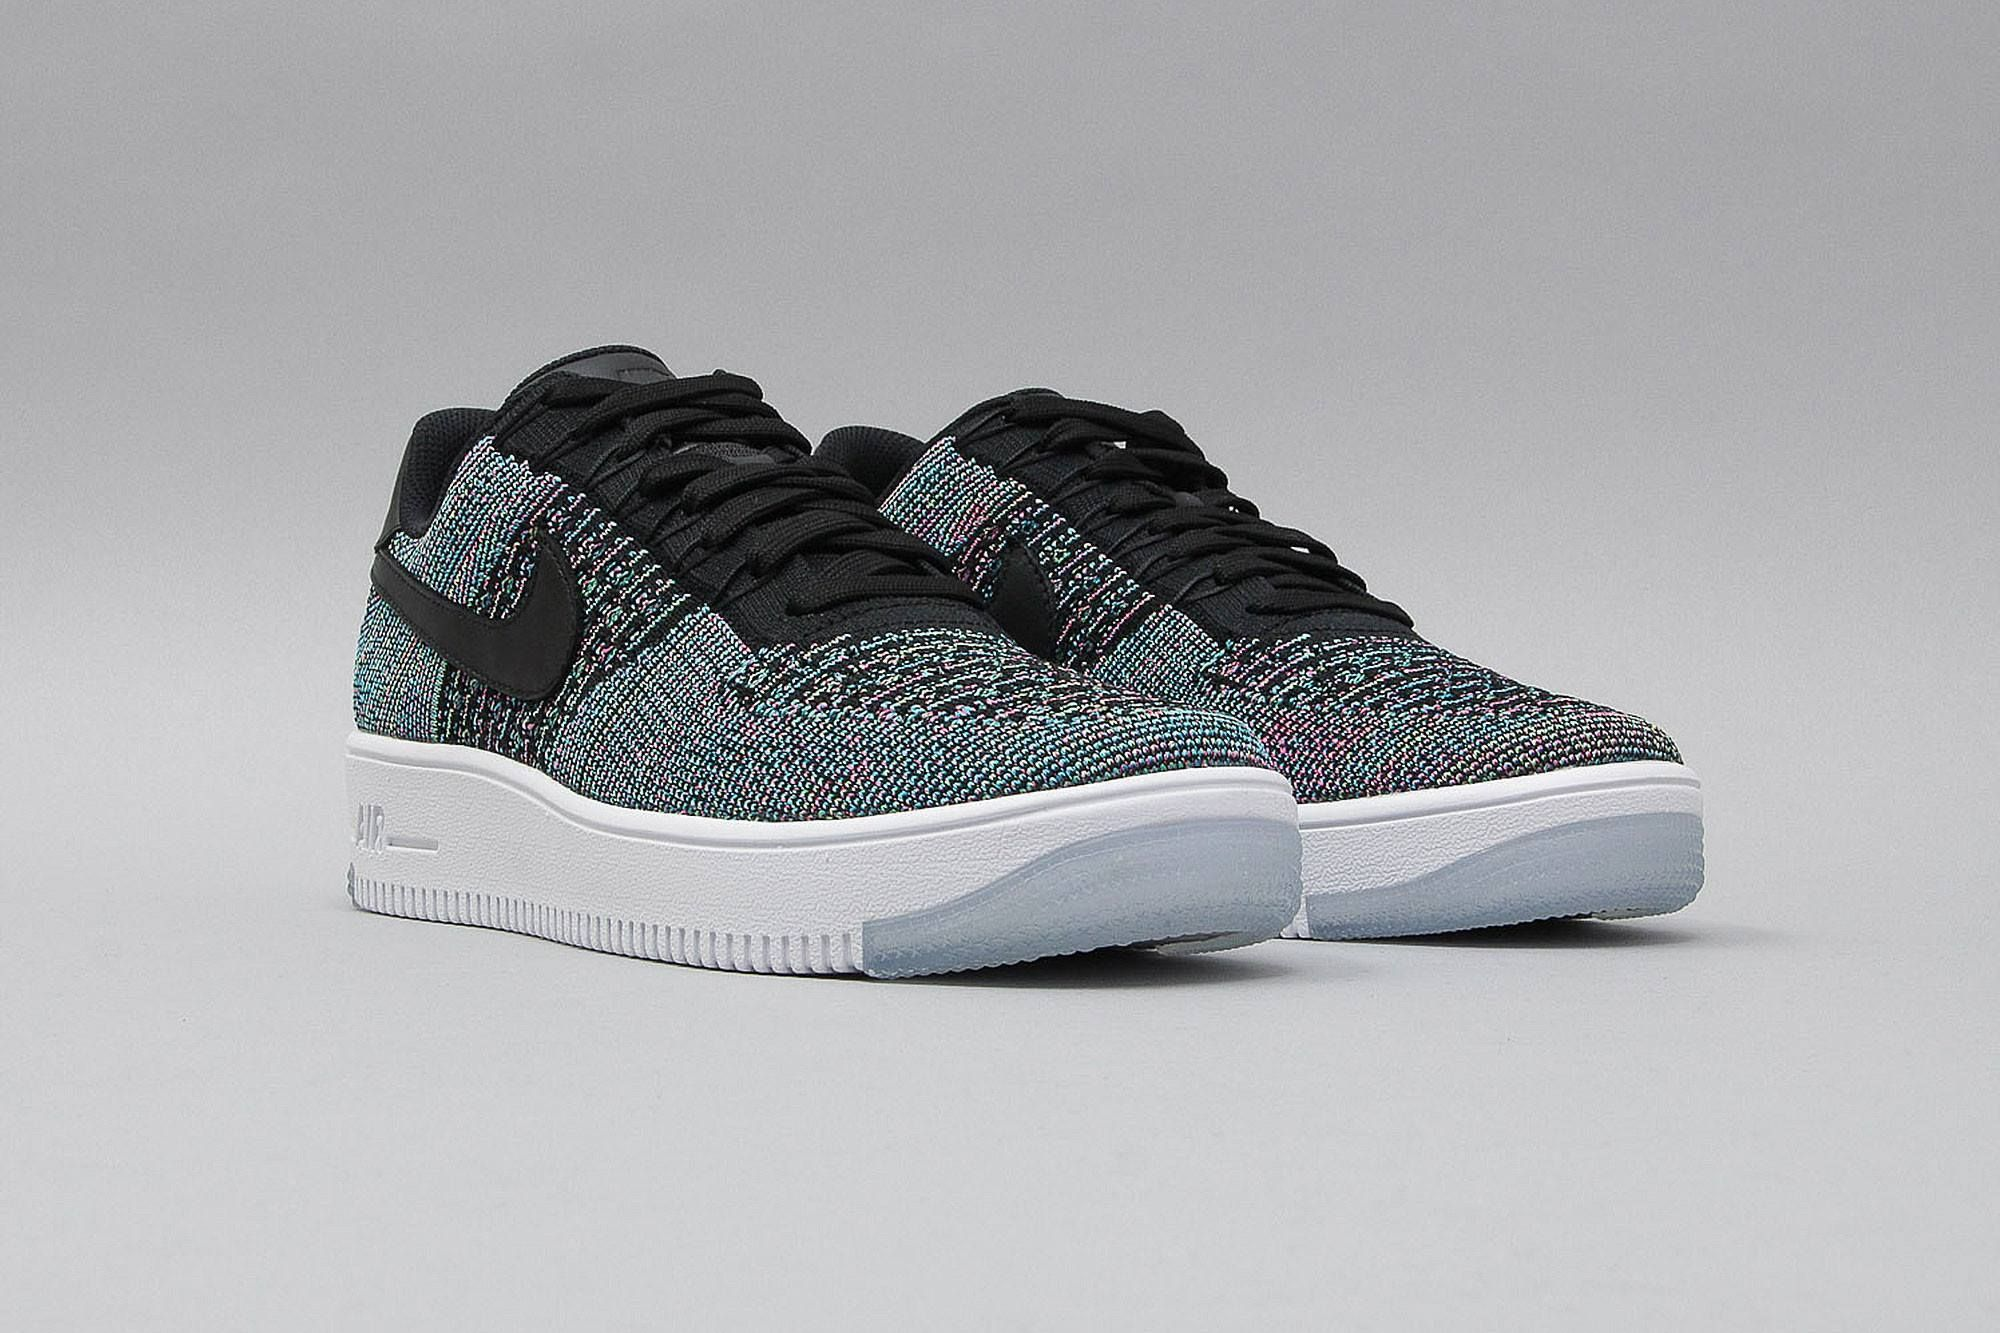 bd964700752 ... cheap nike air force 1 ultra flyknit low black blue lagoon voltage  green 817419 002 blau